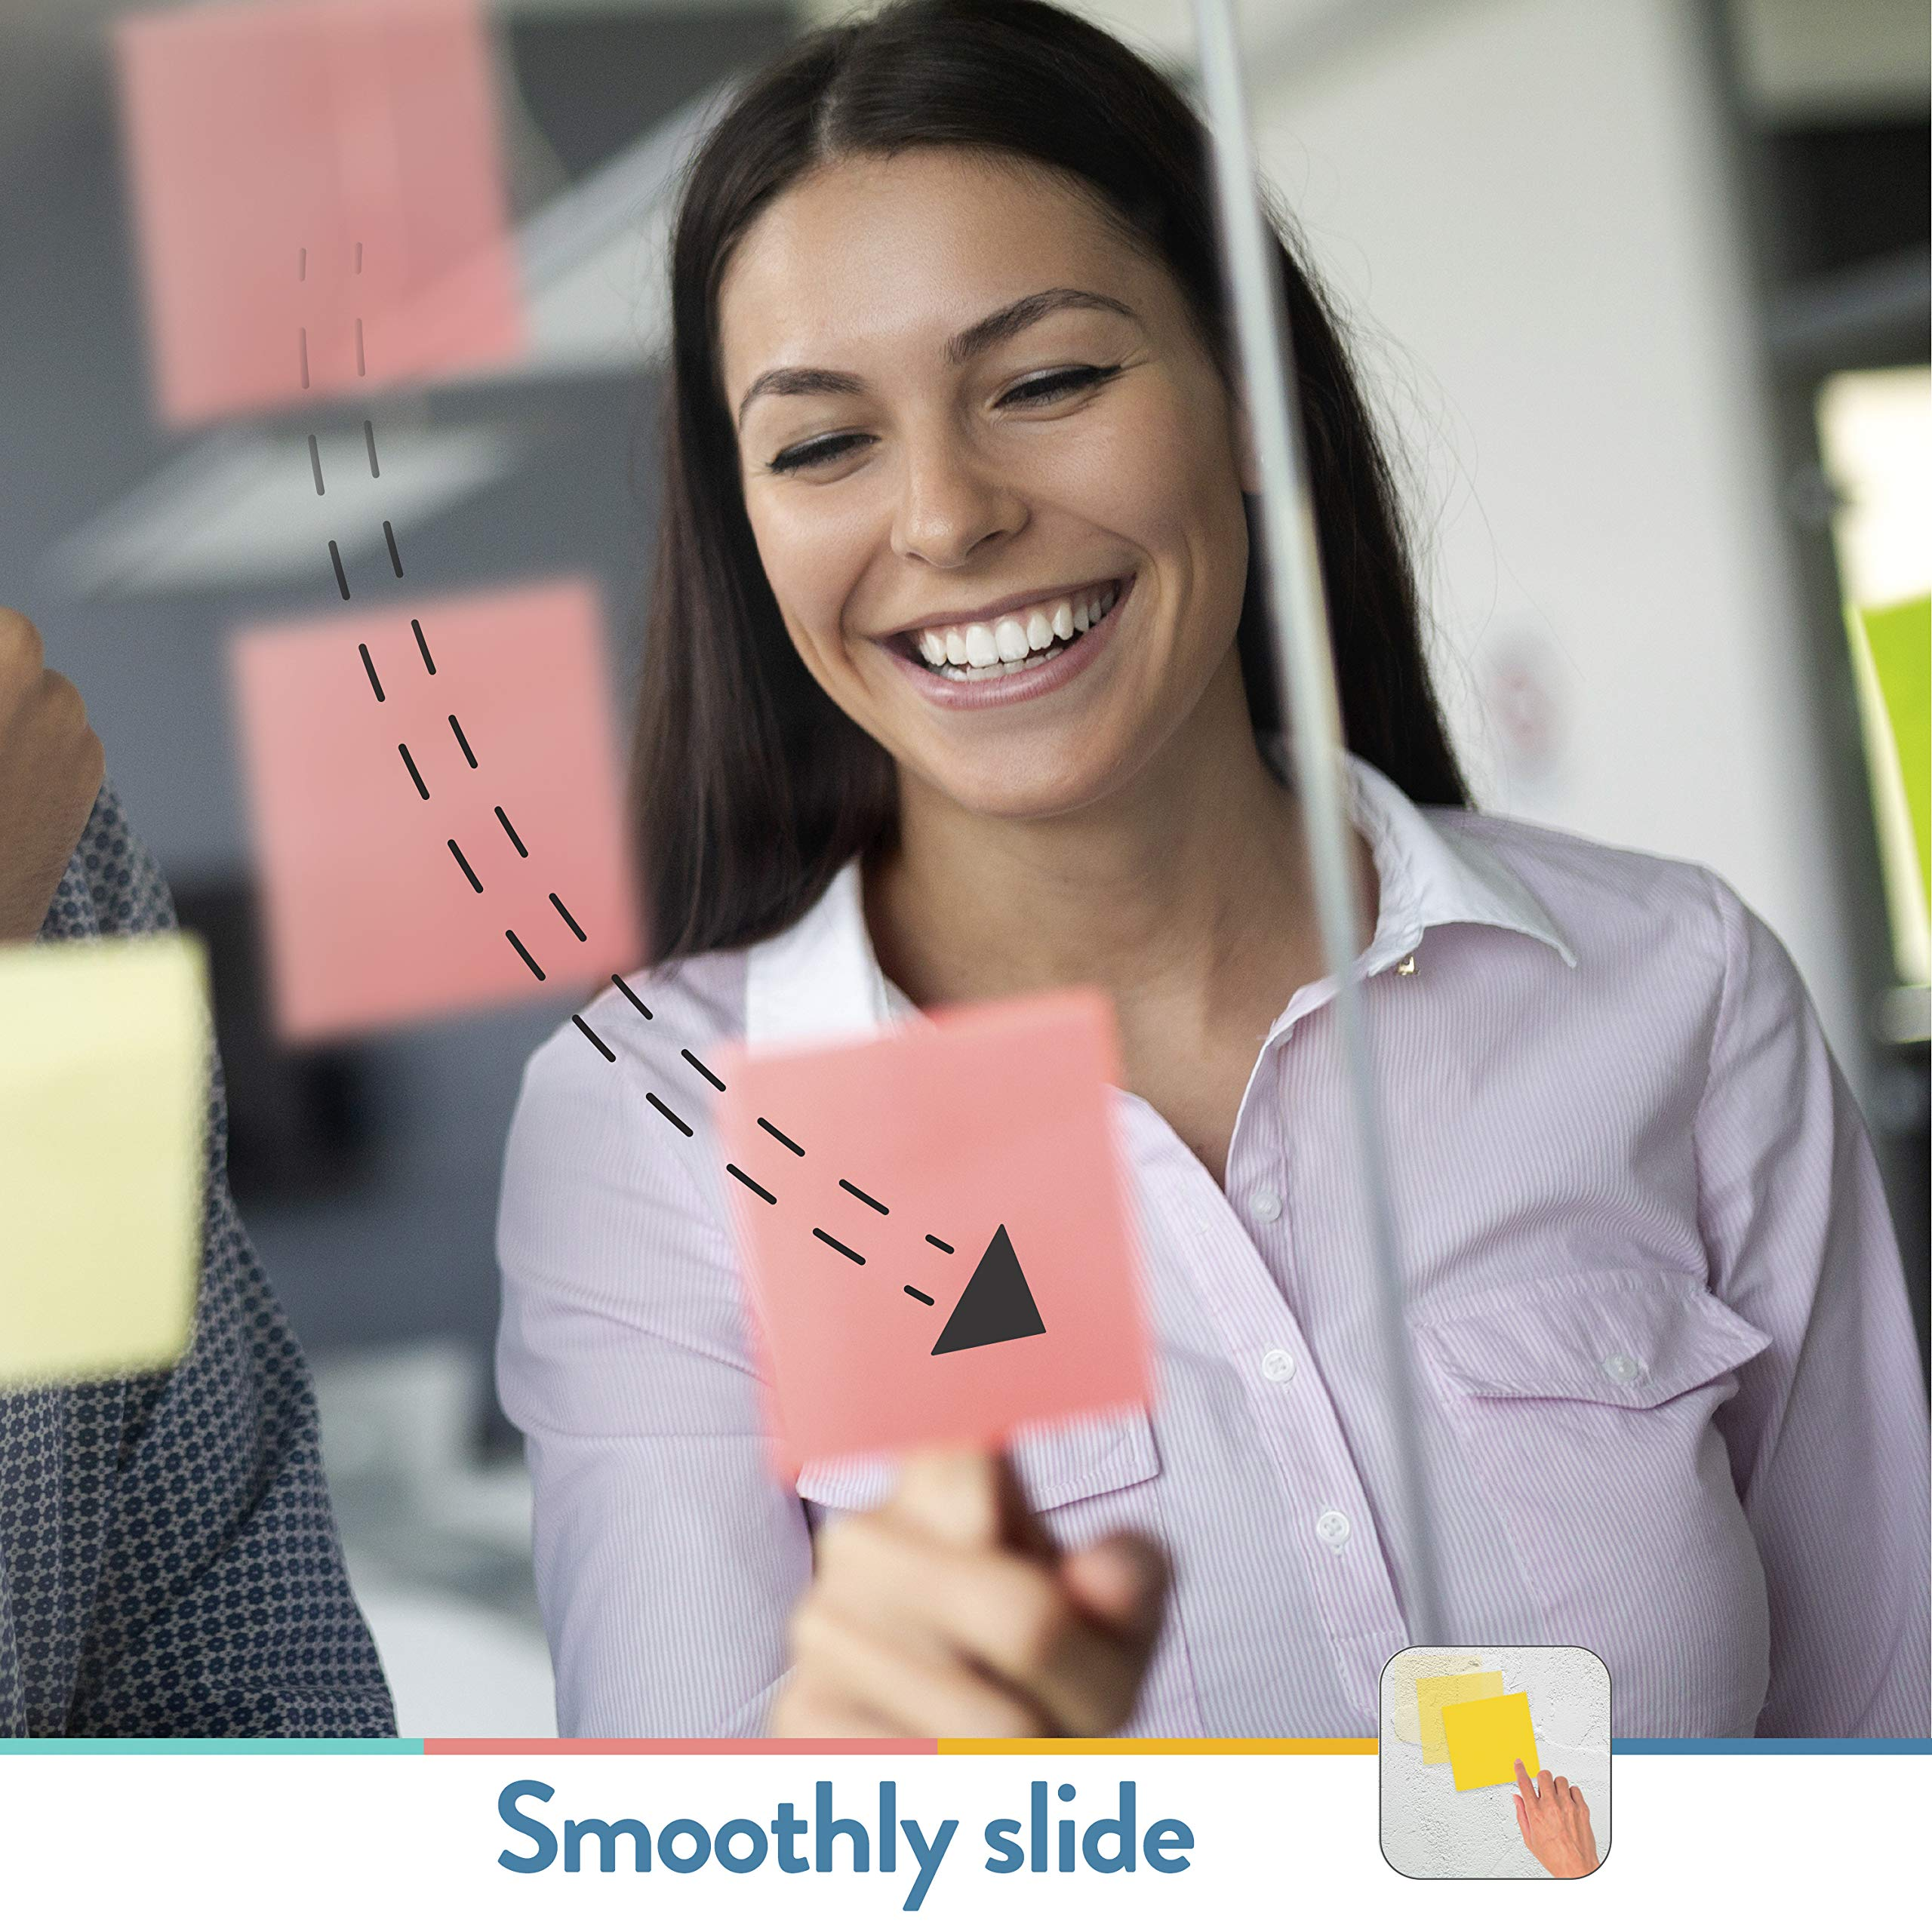 SlickyNotes Reusable Double Sided Notes: 3x3 Inch Glue Free, Static Charged, Dry Erasable, Slideable, Eco-Friendly Paper Pads in 6, 12, and 24 Pack